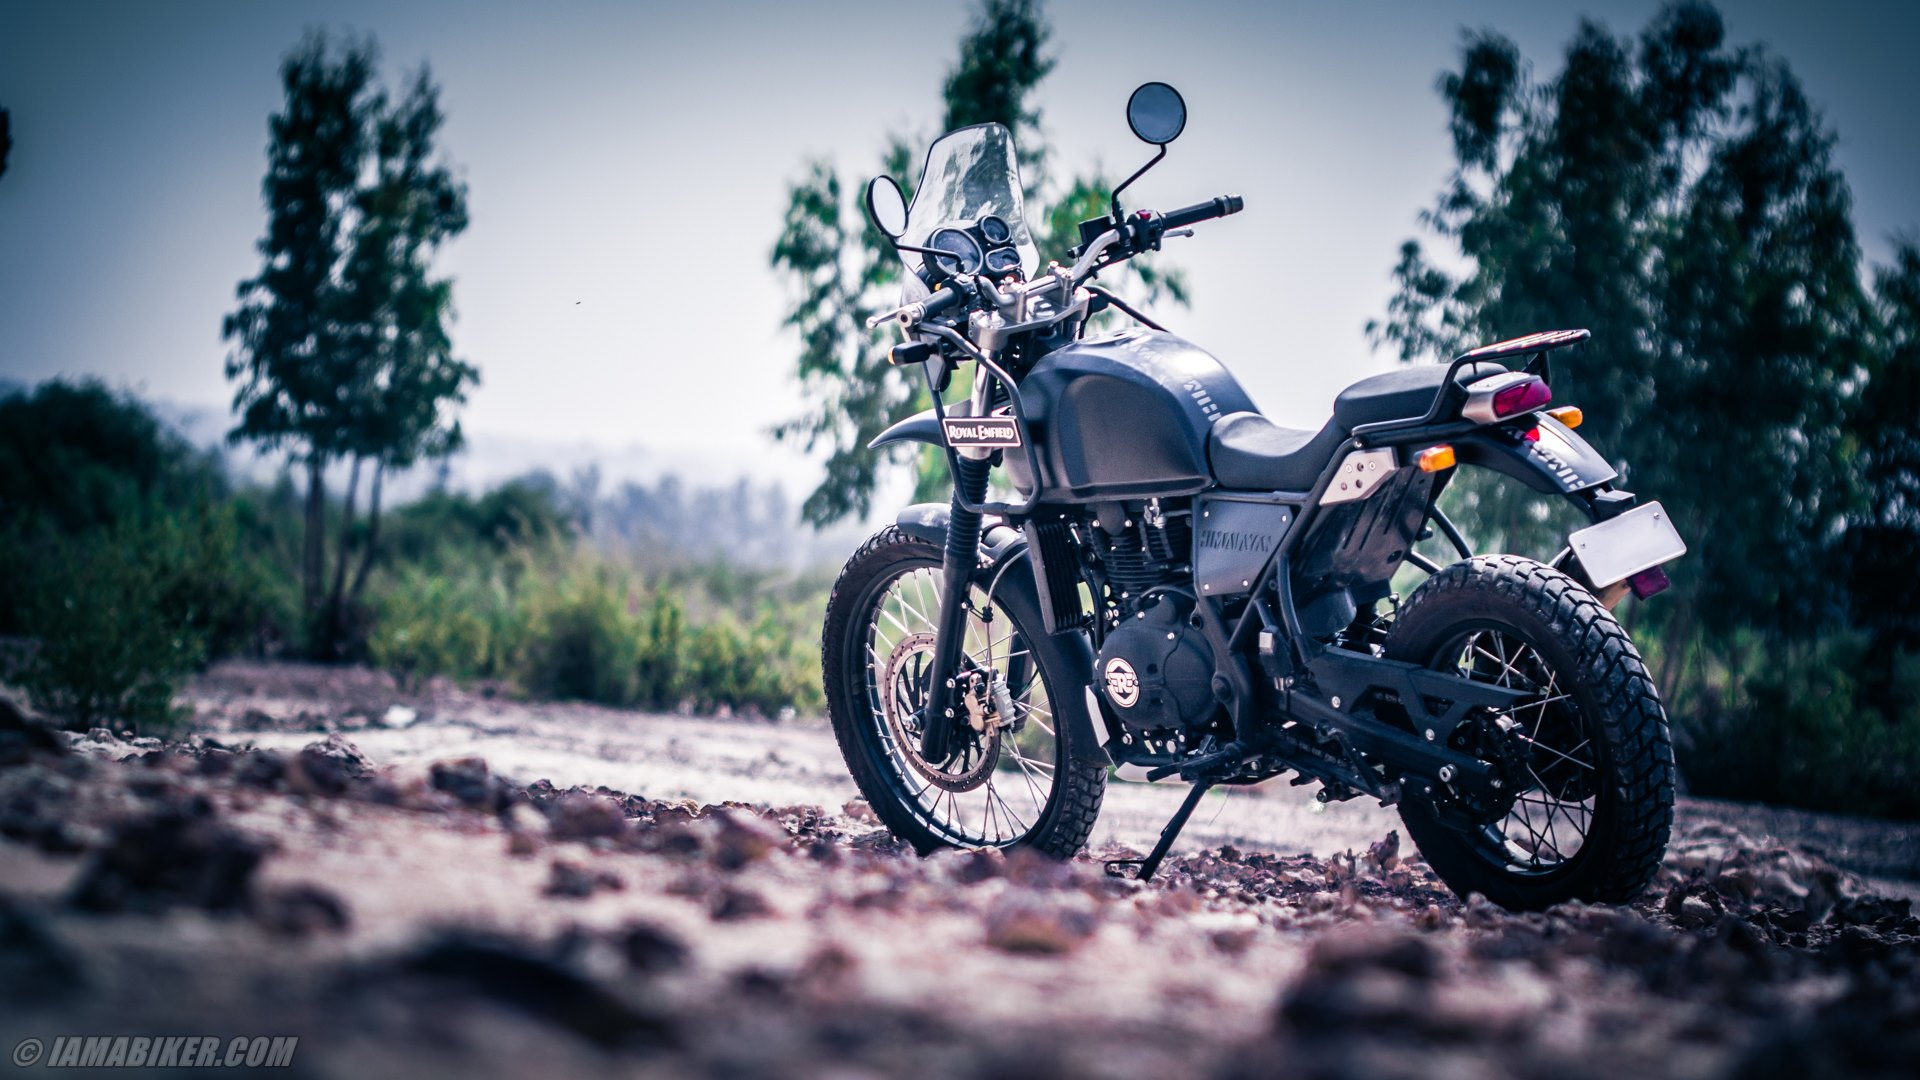 Hd wallpaper royal enfield - Royal Enfield Himalayan Hd Wallpapers 5